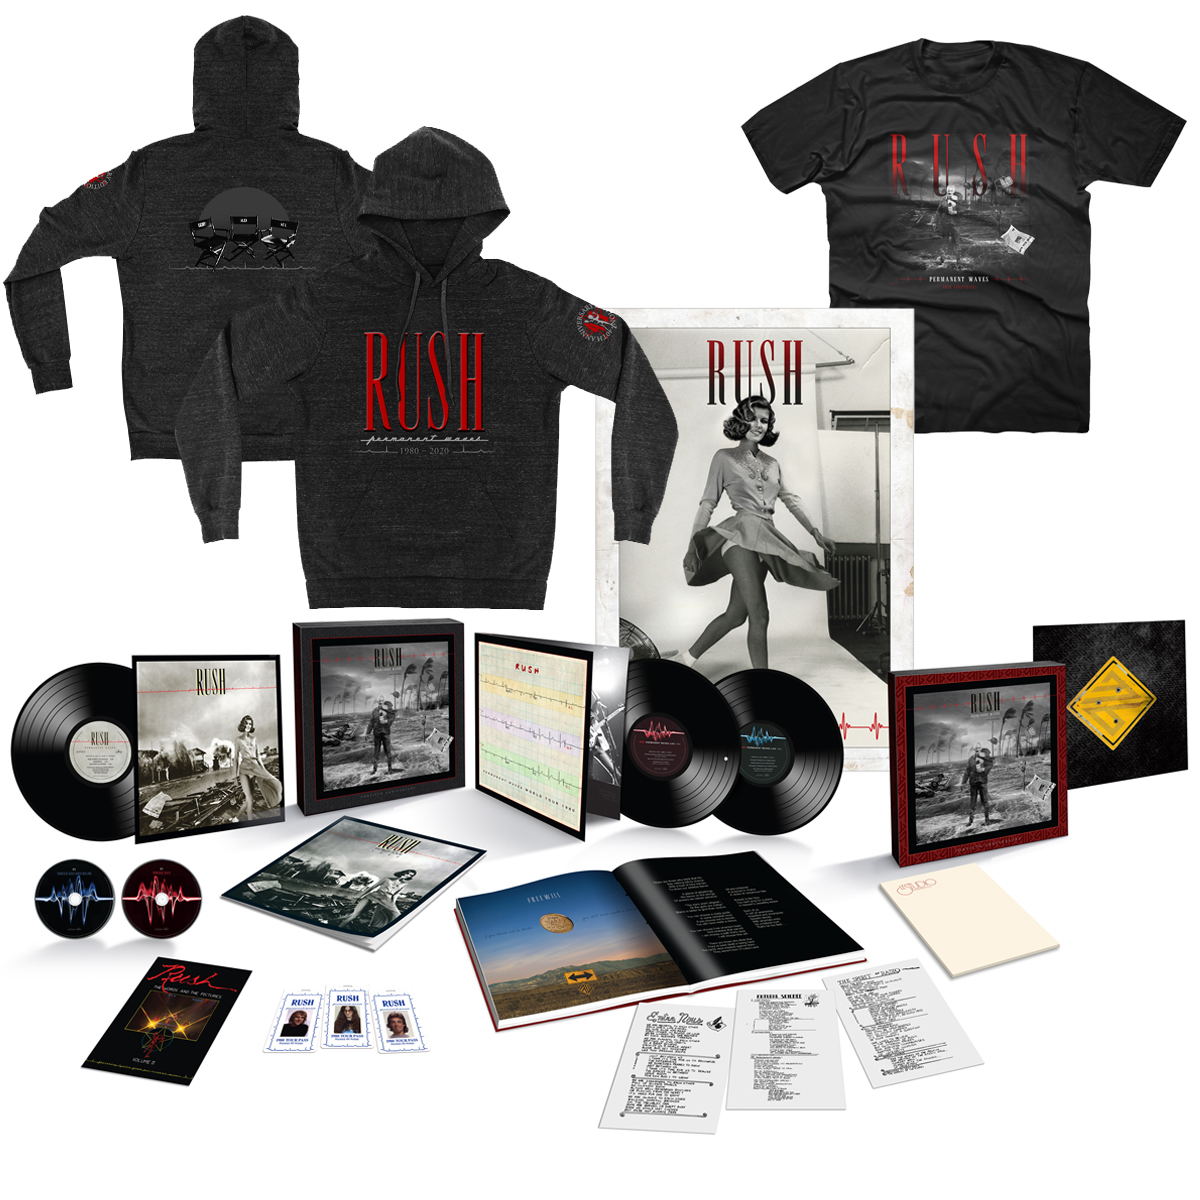 Permanent Waves 40th Anniversary Super Deluxe Box Set + Permanent Waves 40th Anniversary Hoody + Permanent Waves 40th Anniversary Tee